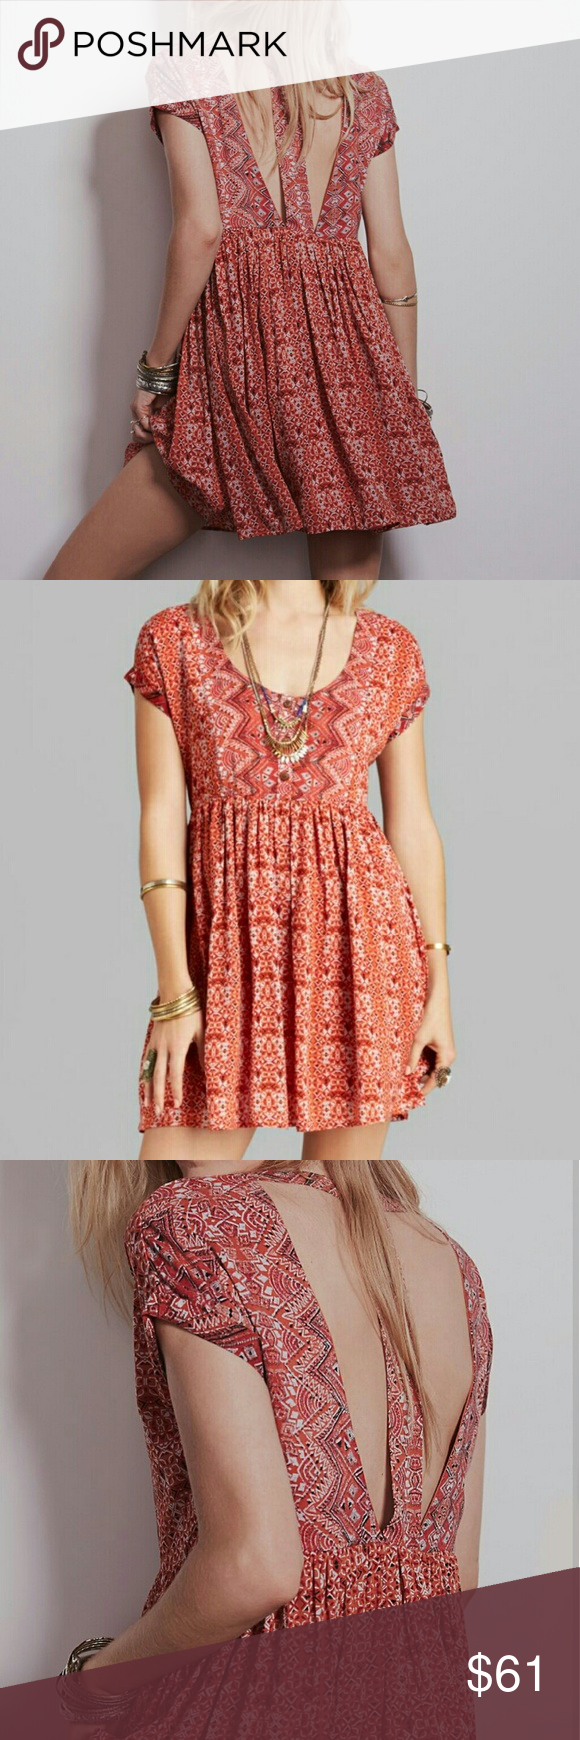 f3d75b901899 Free people sundown dress Orange print babydoll dress with back cutouts.  Slightly longer in the back than the front. Never worn.